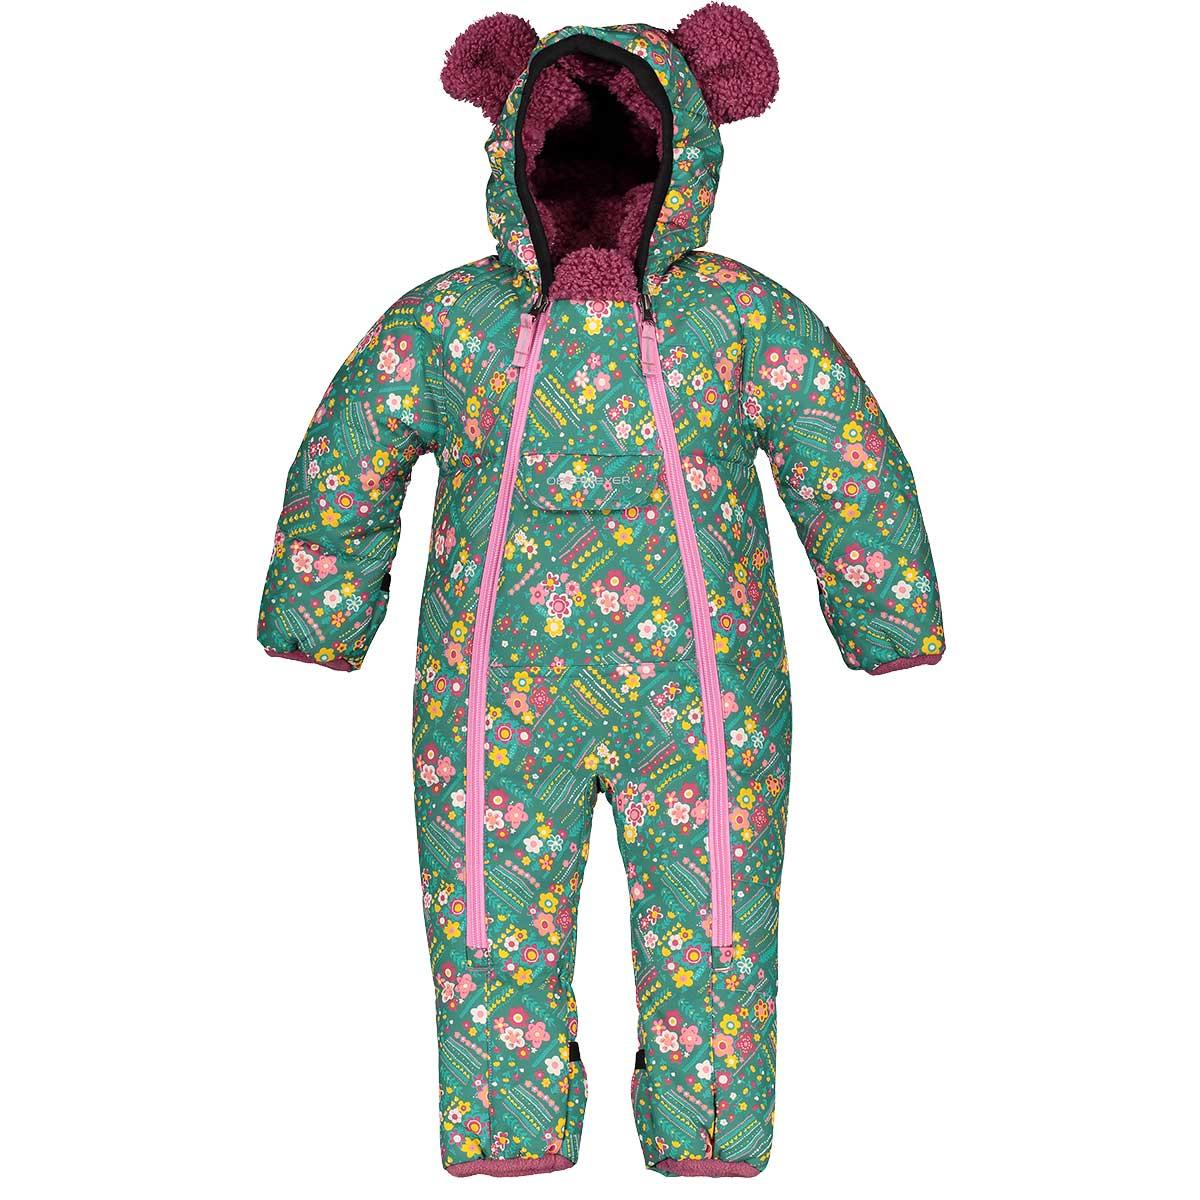 Obermeyer toddlers' Kleine Bunting Snow Suit in Garden Patch front view